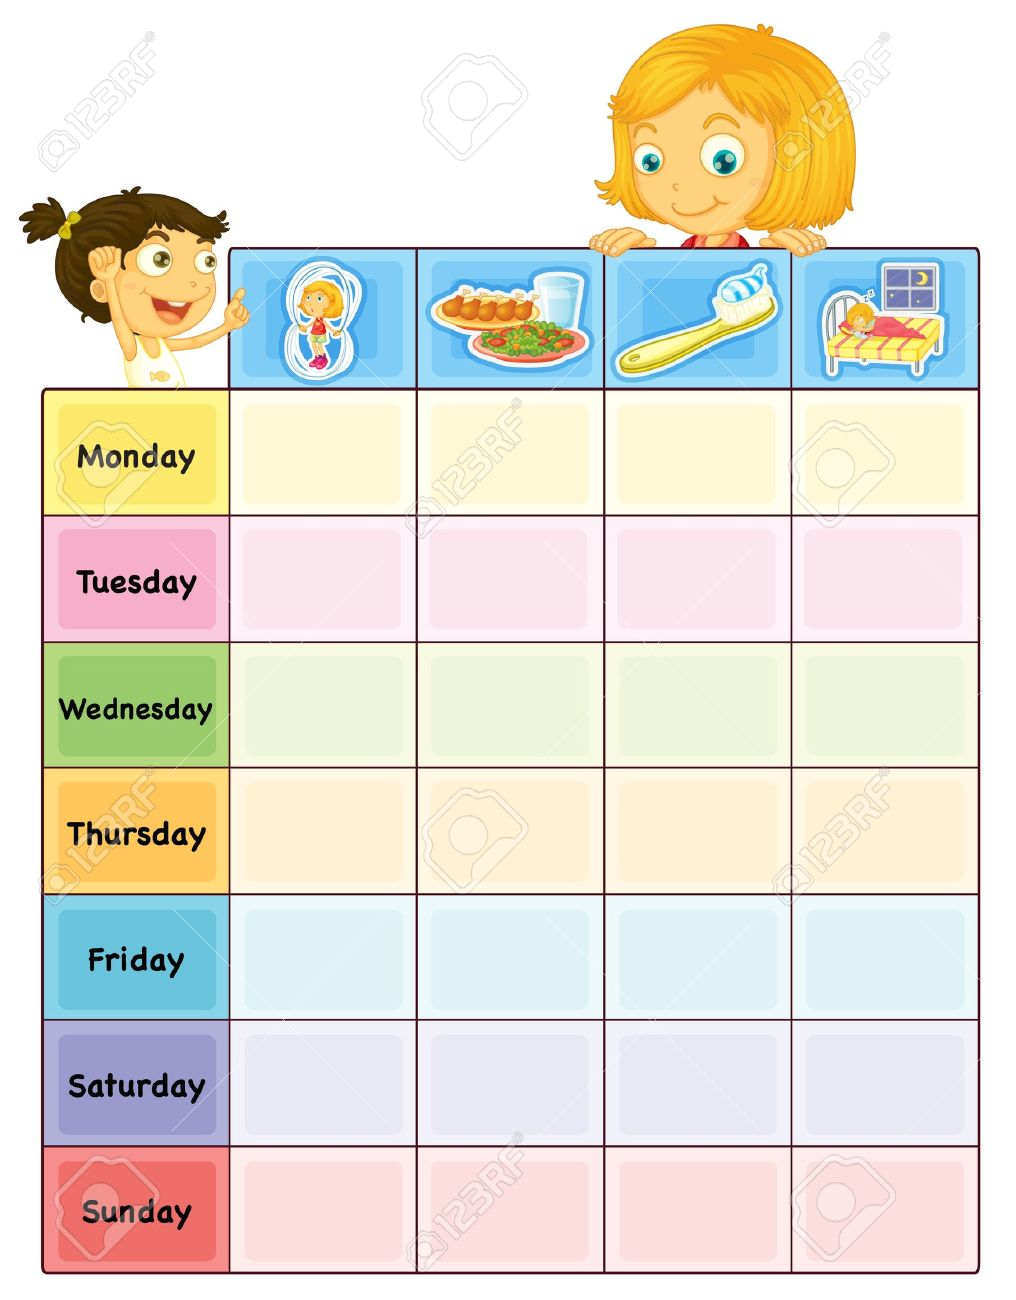 Illustration Of A Daily Routine Chart Royalty Free Cliparts ...